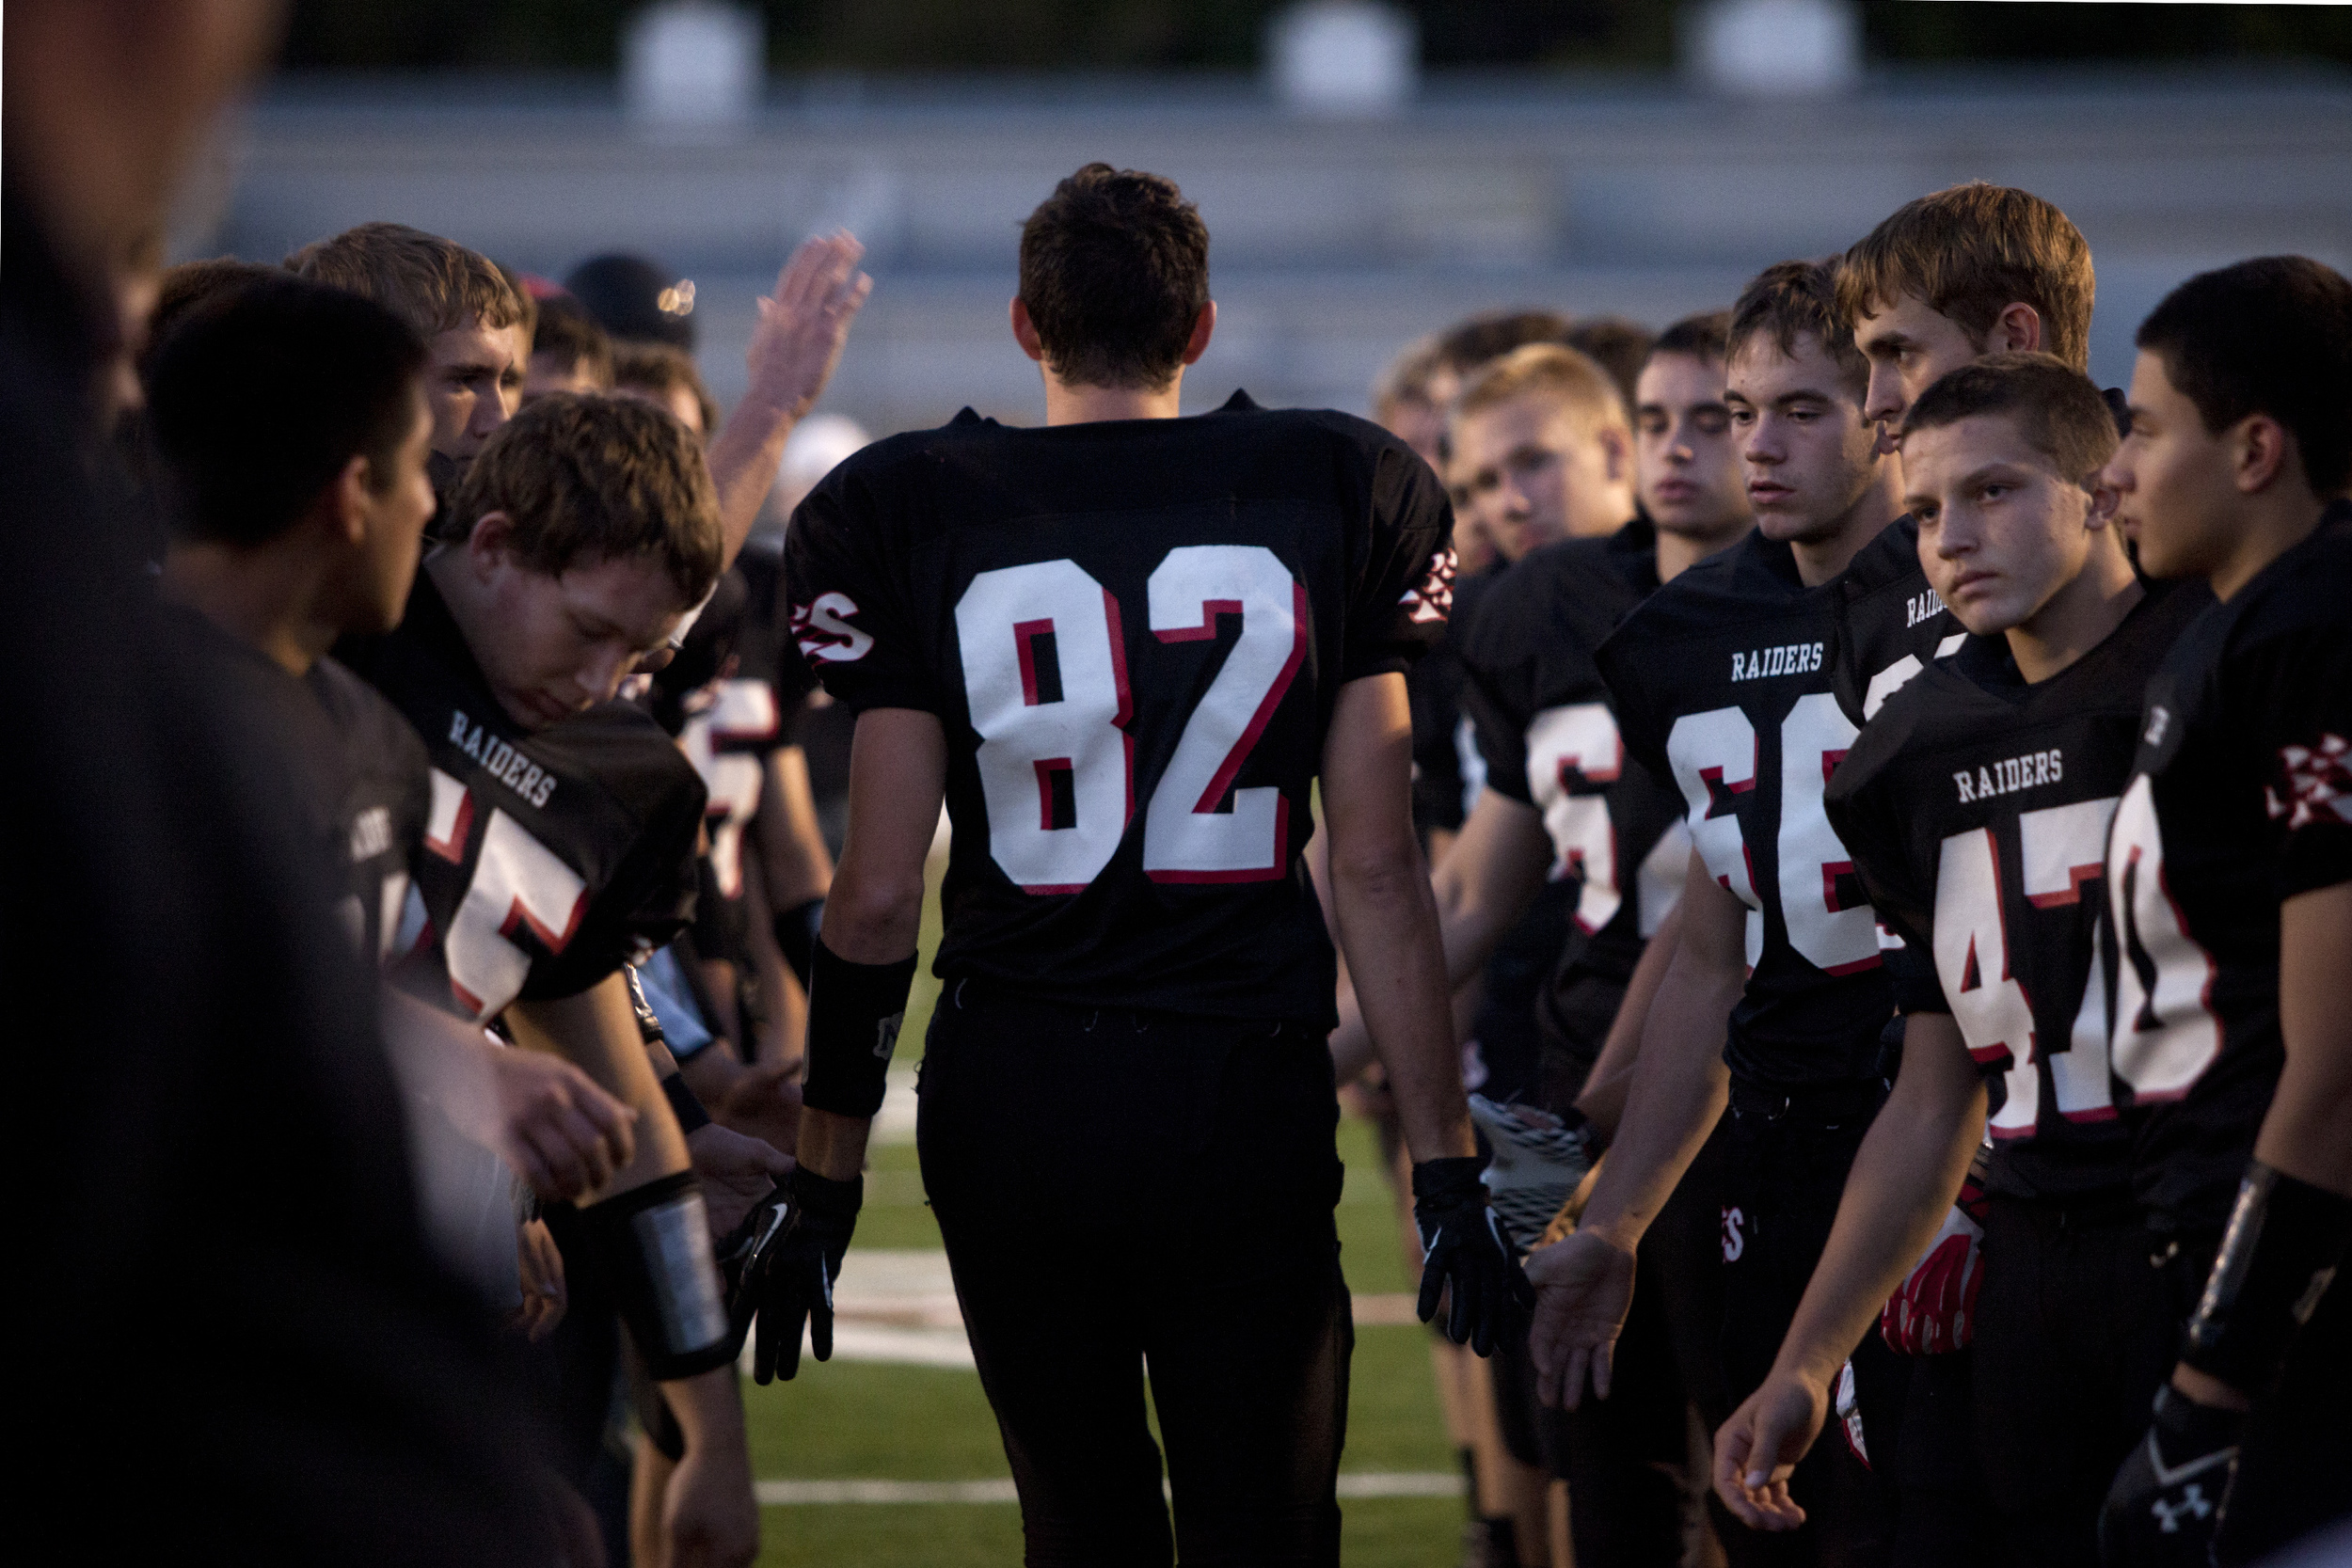 Southridge's Cody Thompson walks through a line of his teammates as he was introduced for senior night before the game against Gibson Southern at Raider Field in Huntingburg, Ind. on Oct. 18, 2013. The Raiders lost 31-21.